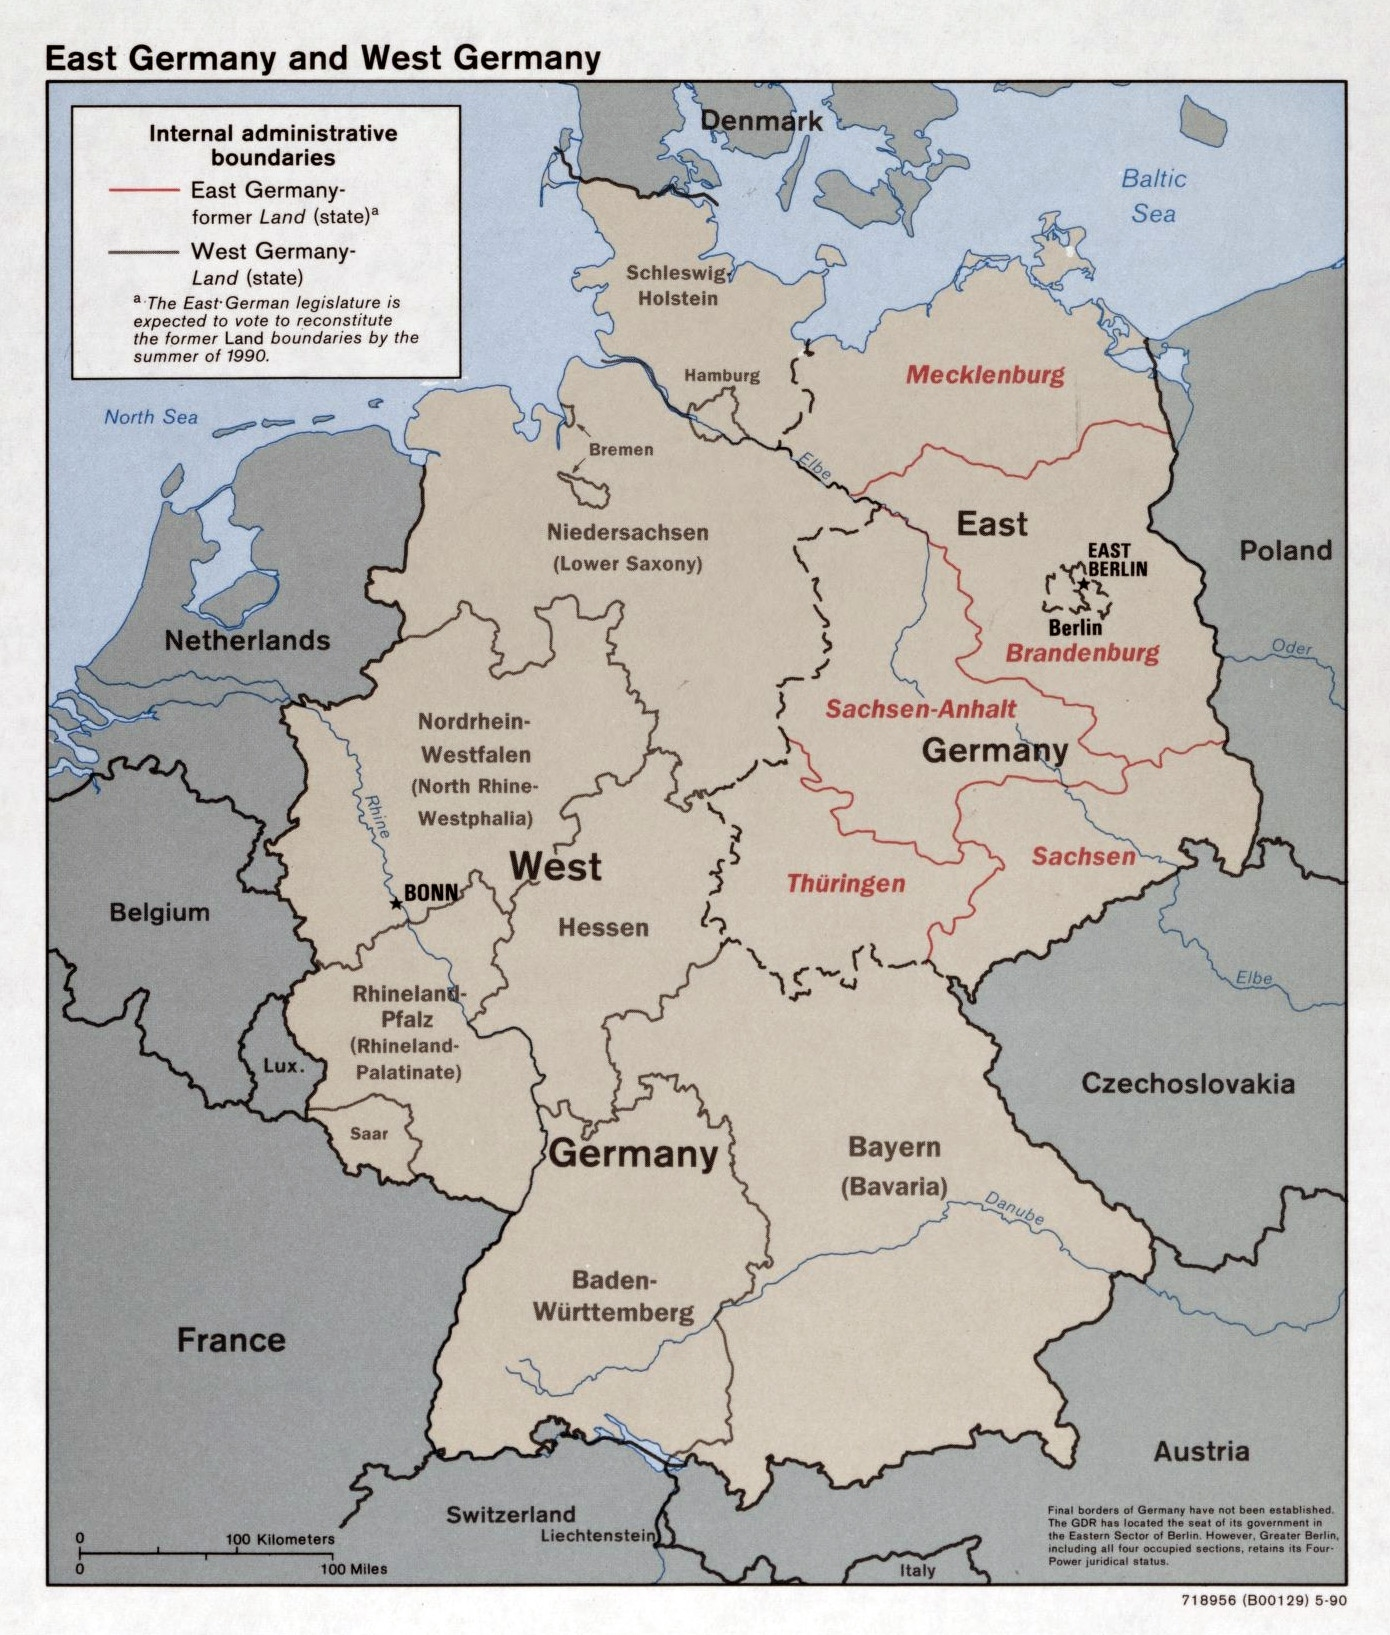 Large Detailed Political And Administrative Map Of East Germany And intended for East Germany Map